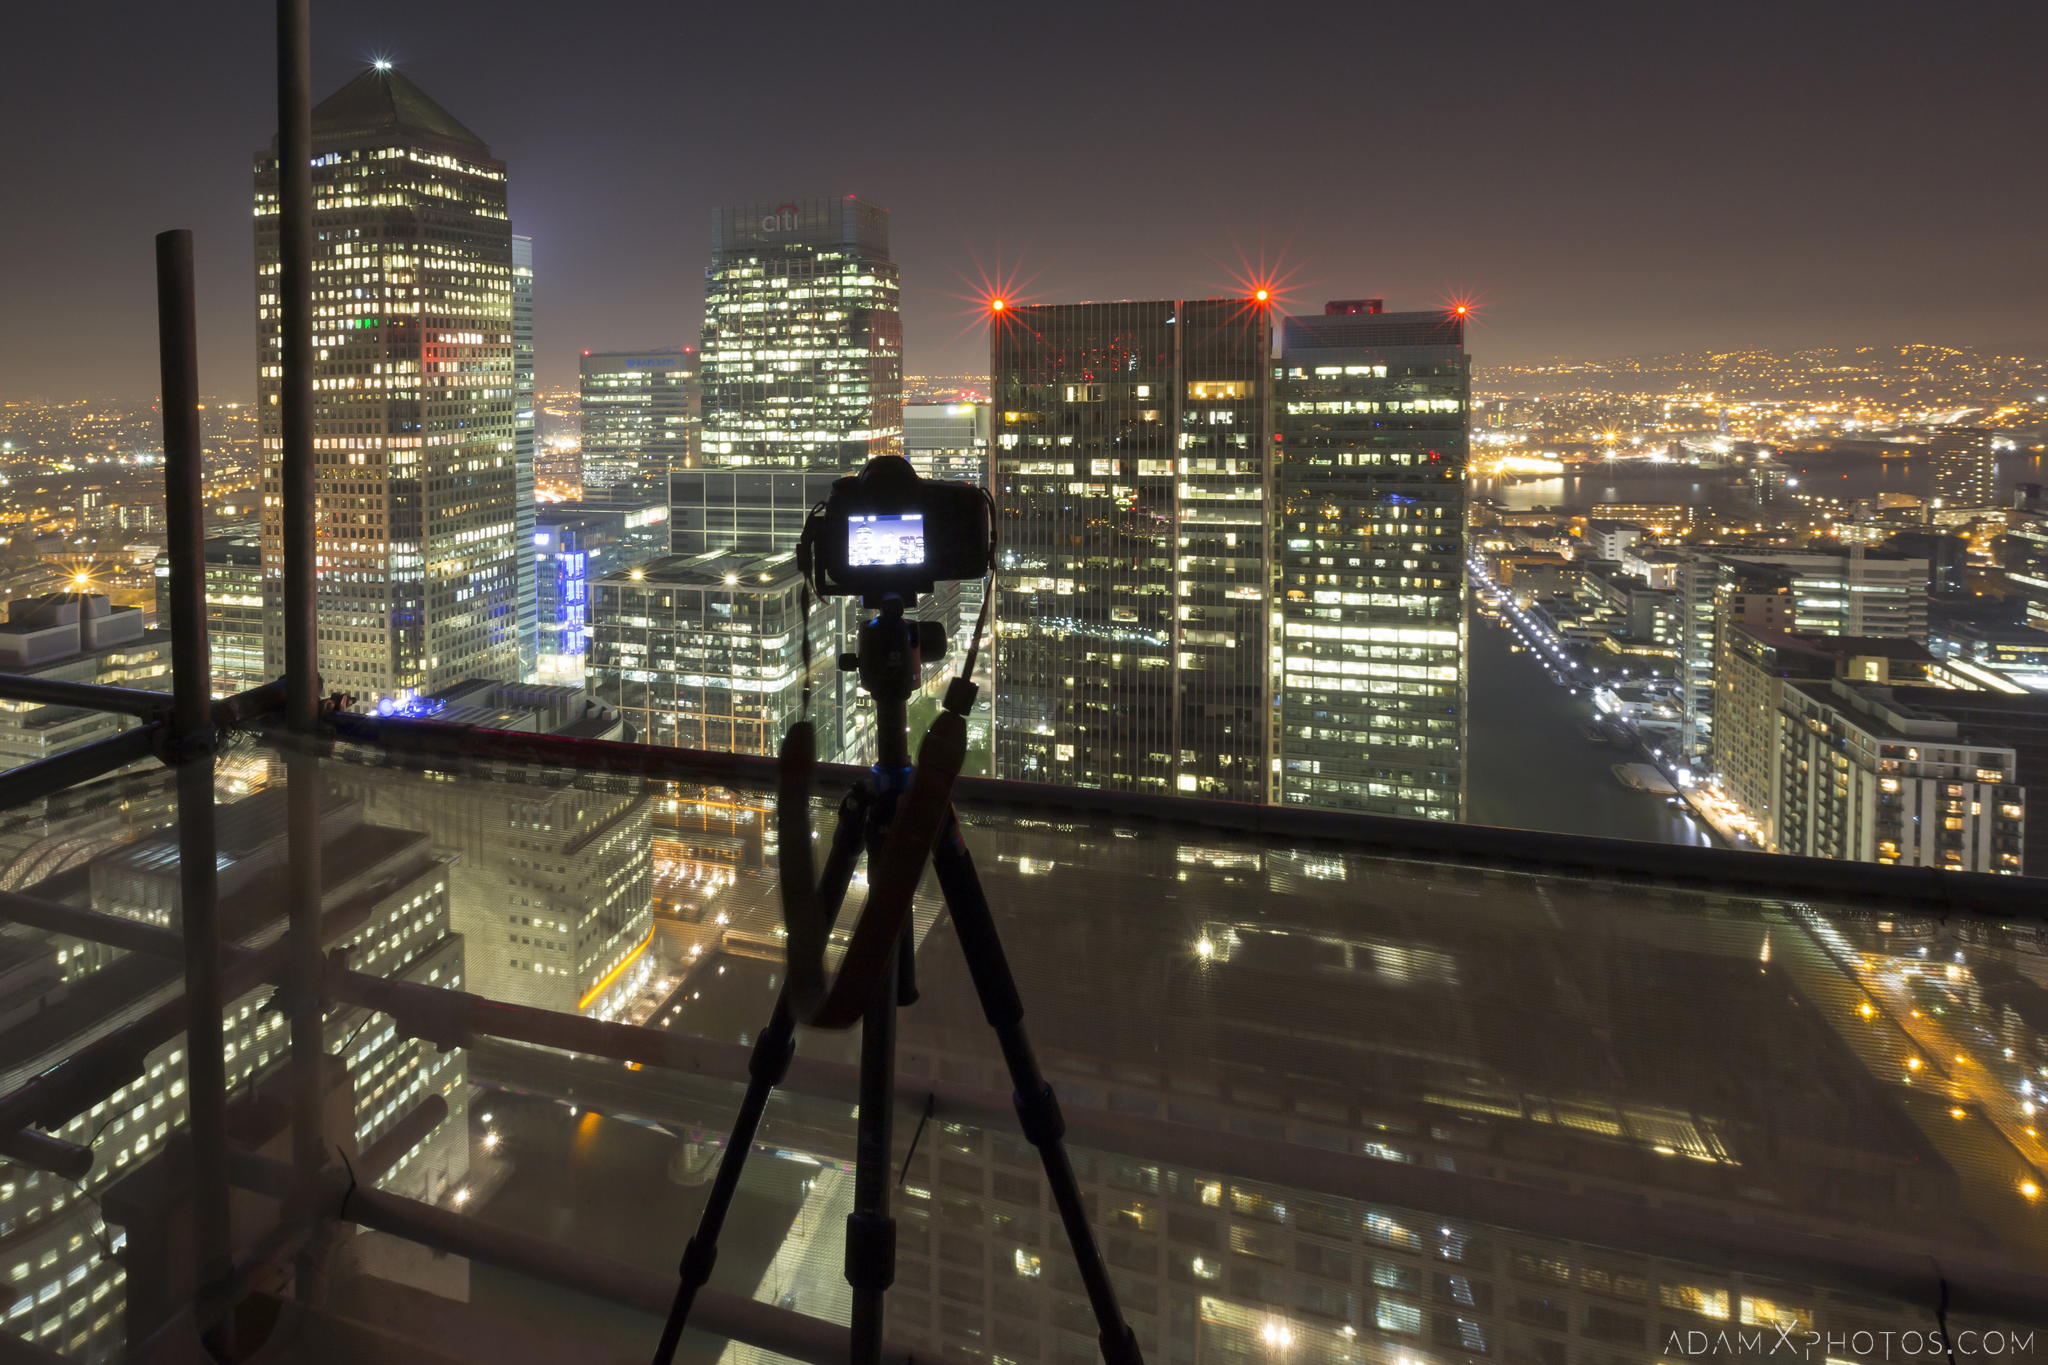 BTS Behind The Scenes Rooftop Rooftopping London Urbex High Adam X Urban Exploration Access 2017 Abandoned decay lost forgotten derelict location dangerous night nightttime